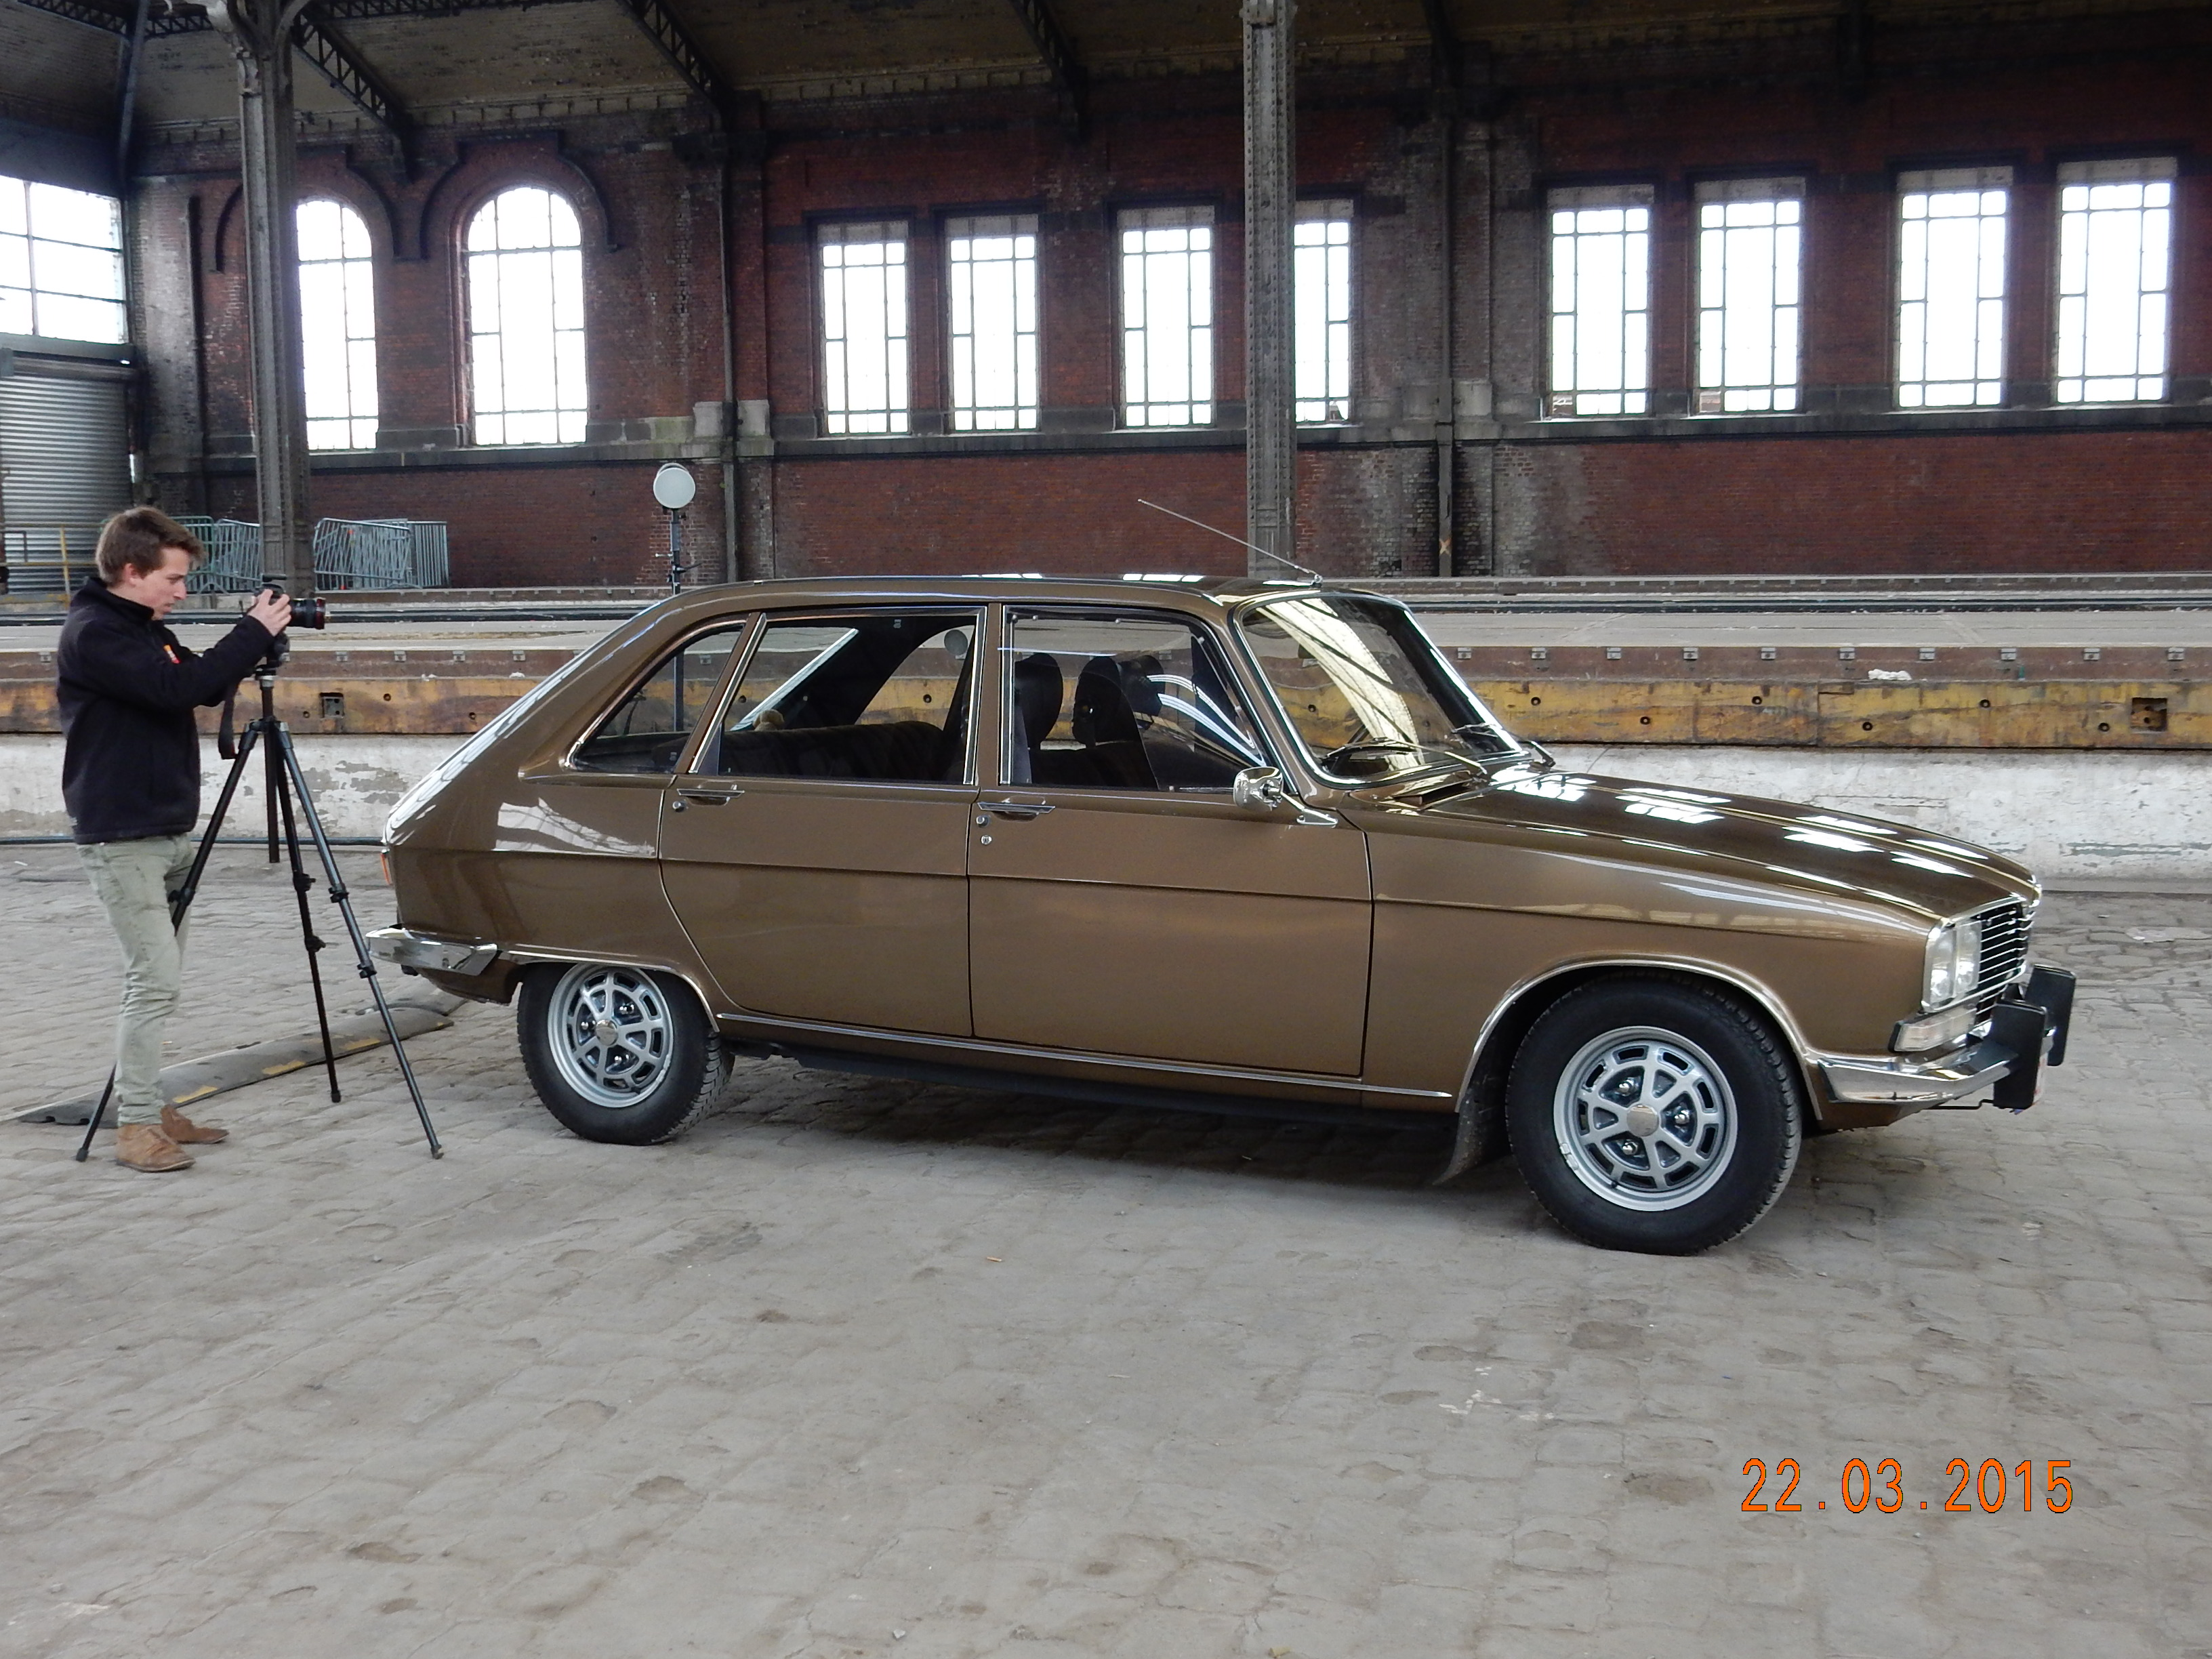 renault 16 tx 1975 shooting photos r16 tx kuikui16 photos club. Black Bedroom Furniture Sets. Home Design Ideas